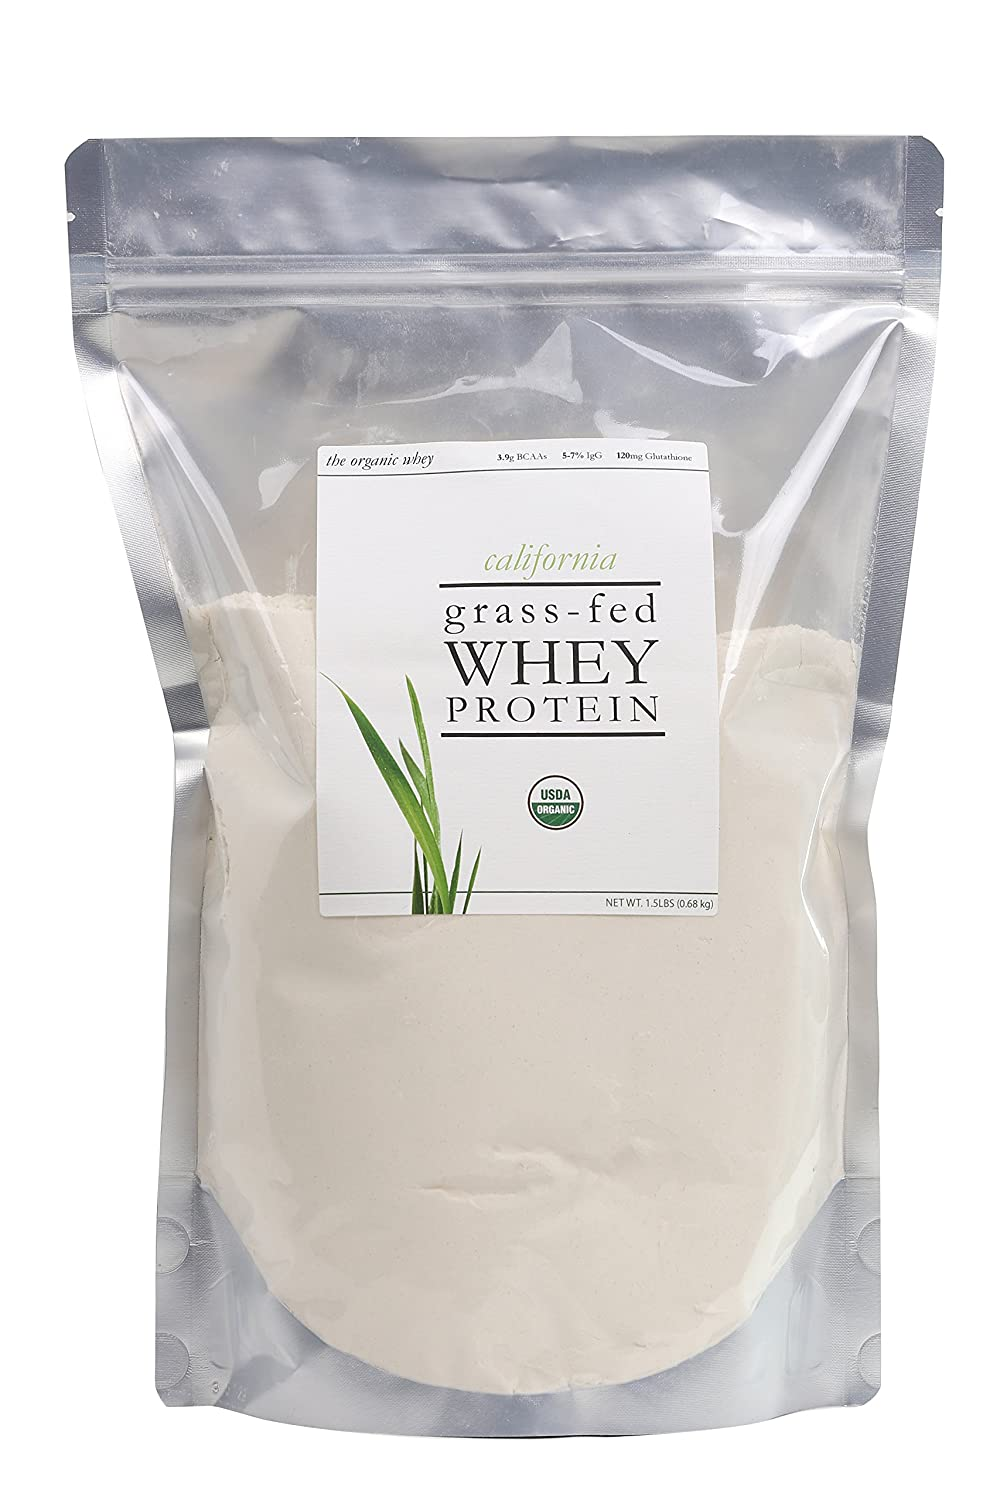 The Organic Whey Protein Powder – 100 Grass Fed Protein – Gluten-free, Non-GMO, USDA Certified Organic – Unflavored – Bulk Bag, 1.5 lbs